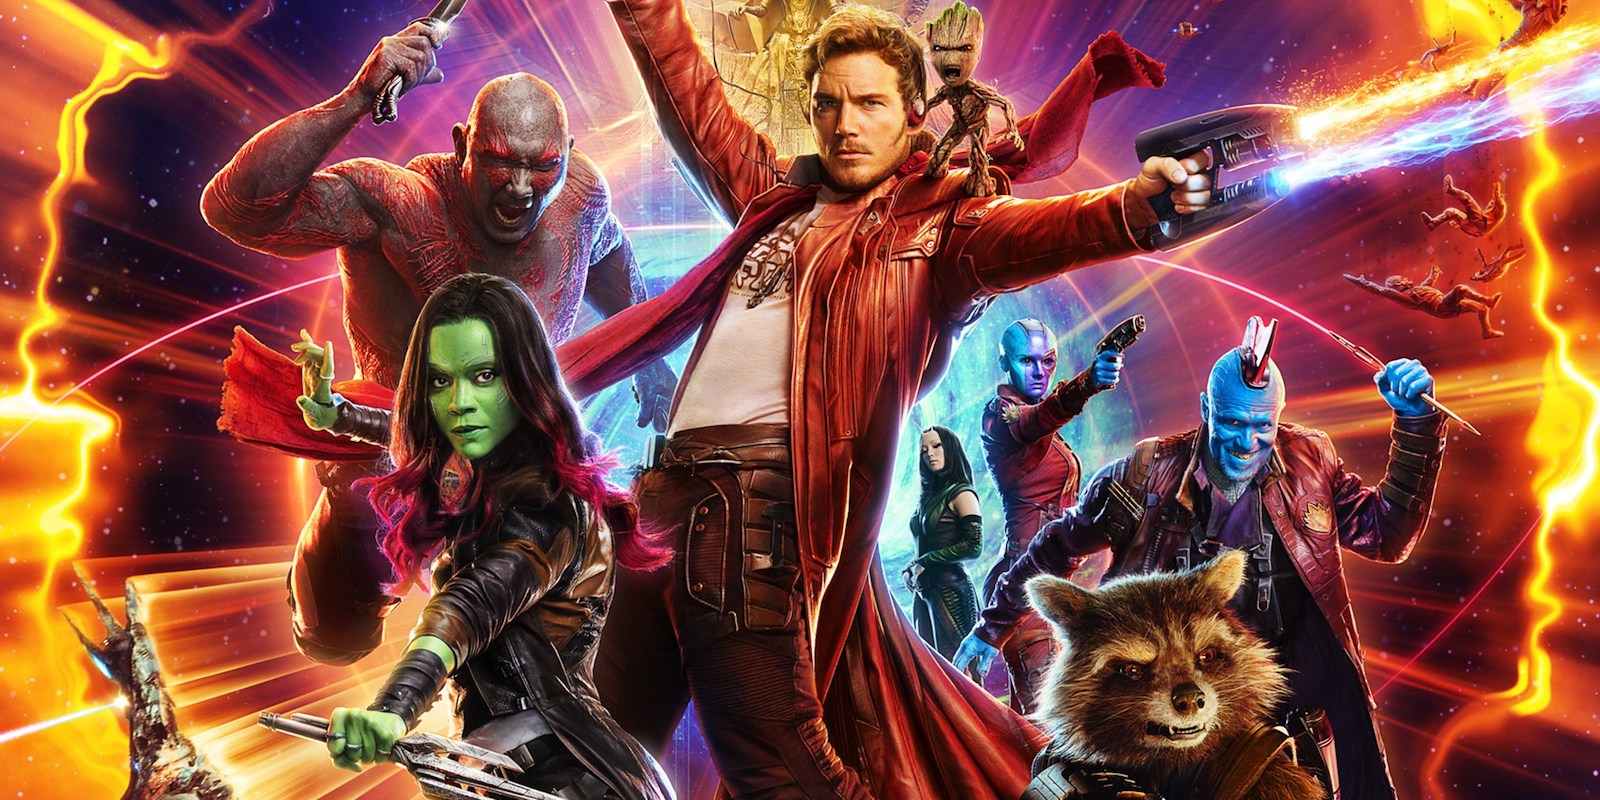 name numerology for the guardians of the galaxy characters